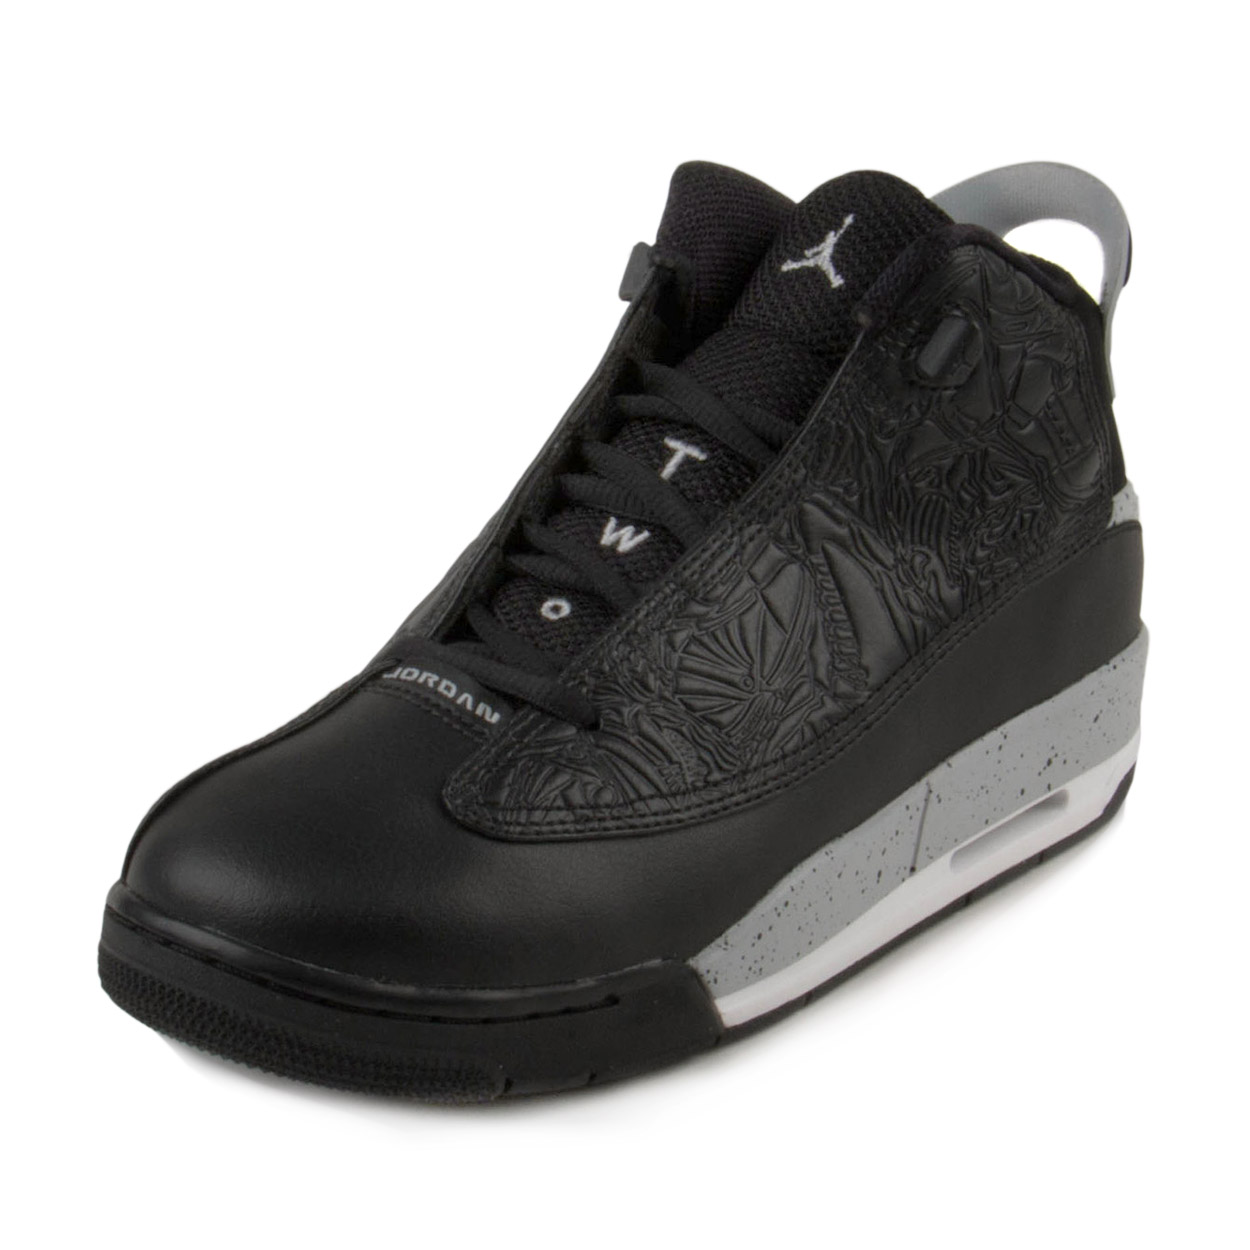 Nike Boys Air Jordan Dub Zero BG Black/Wolf Grey 311047-002